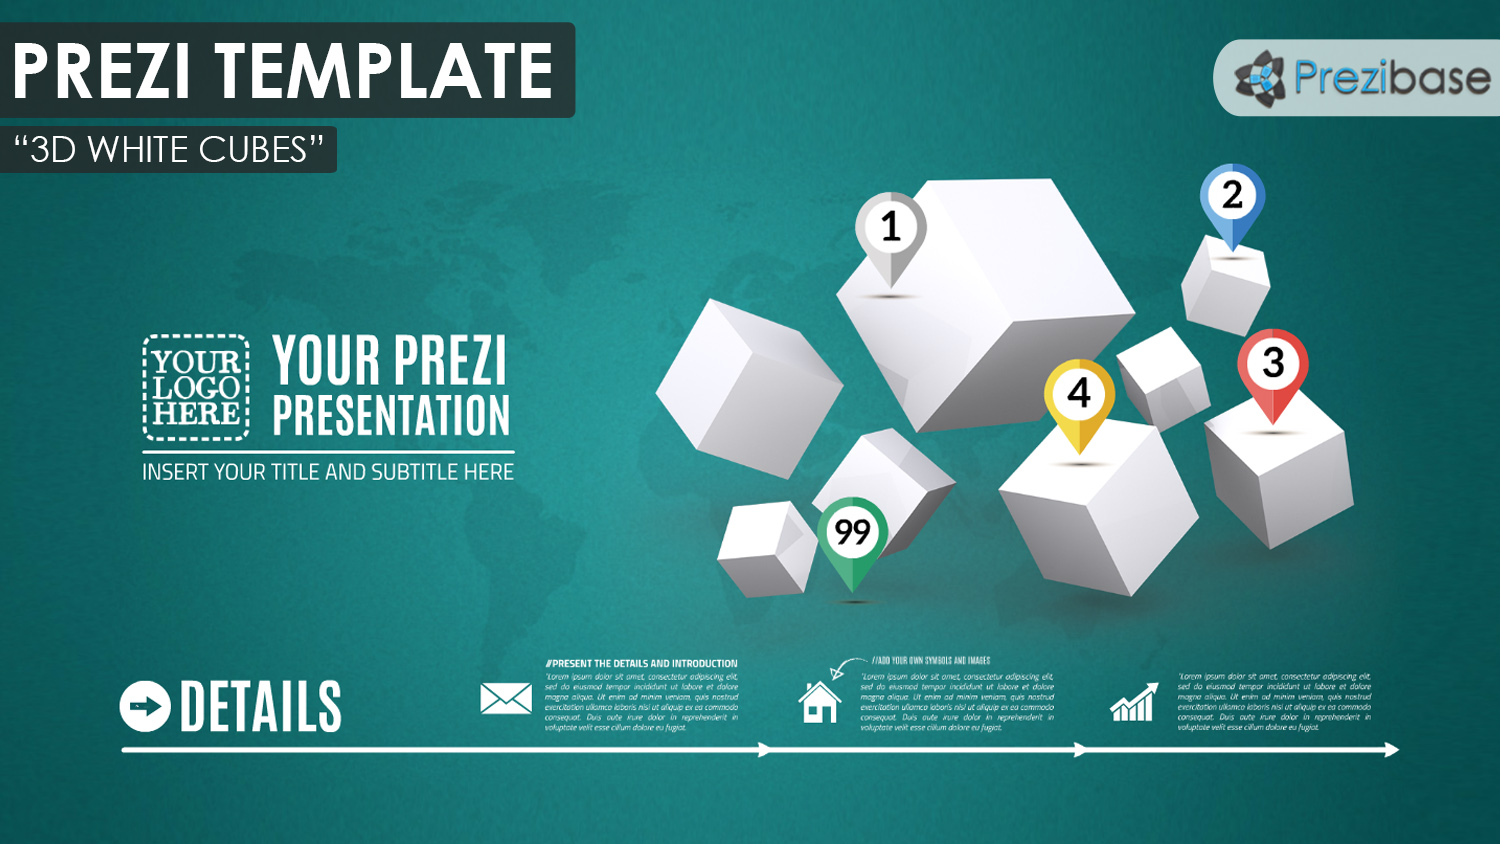 3D-white-cubes-squares-business-world-infographic-diagram-prezi-templates.jpg